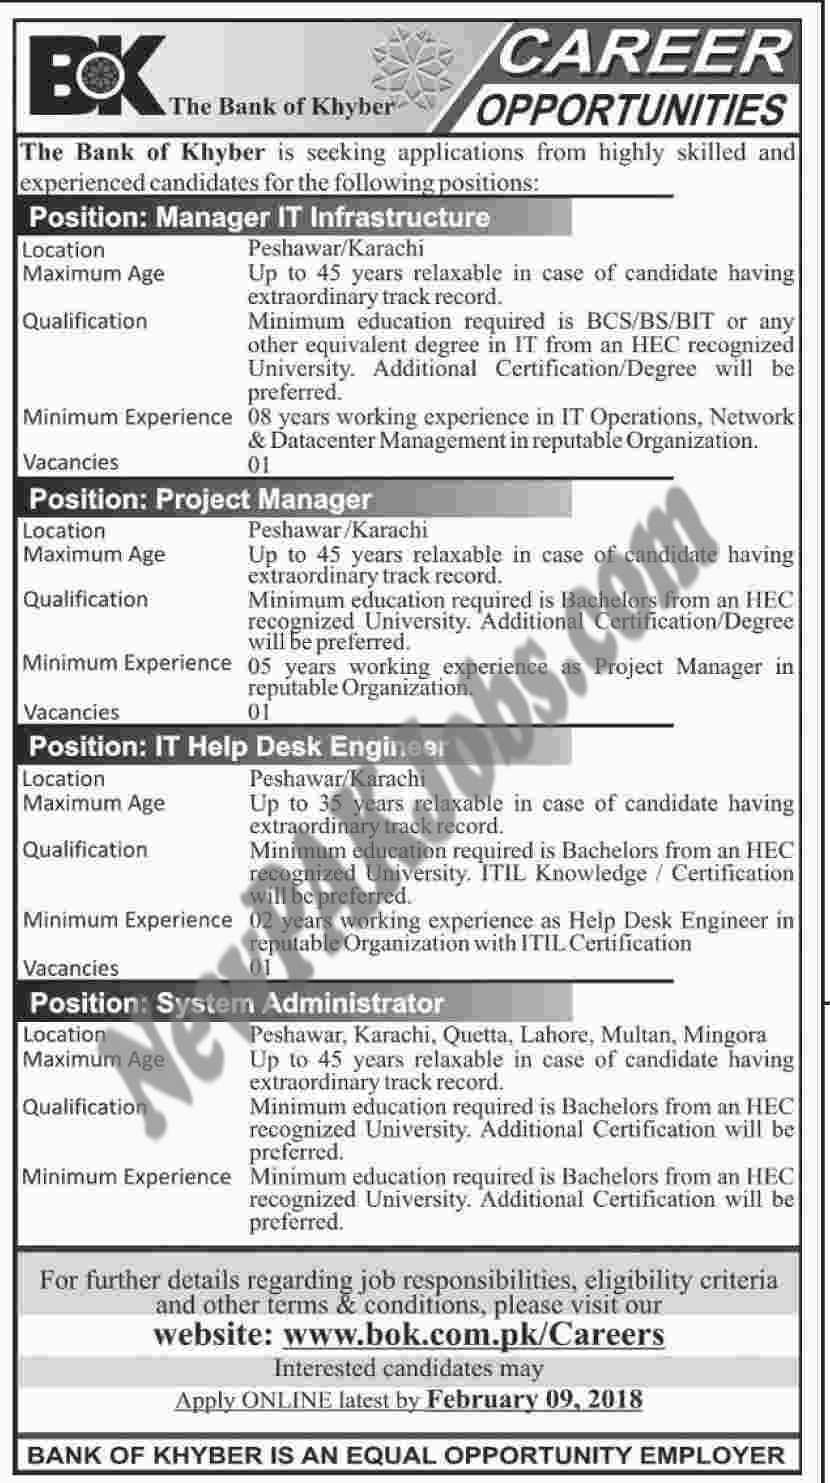 New Vacancies announced in The Bank of Khyber